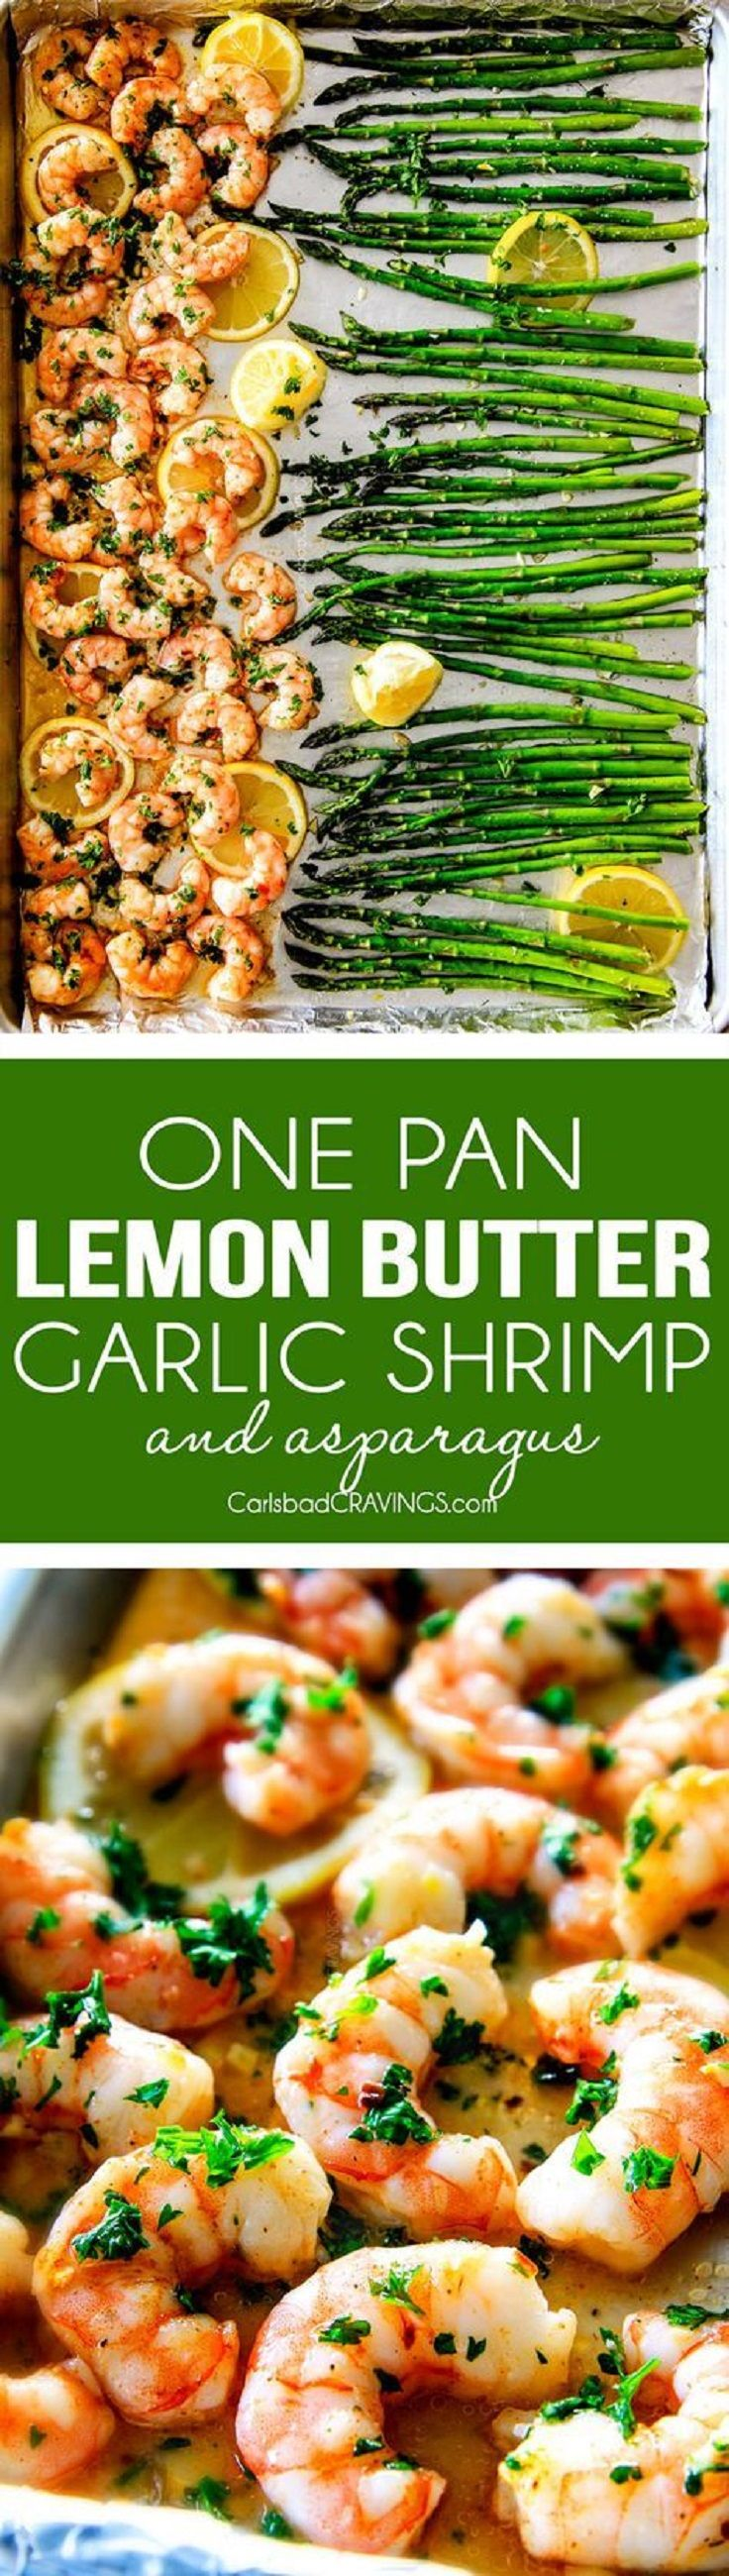 Roasted Lemon Butter Garlic Shrimp and Asparagus - Easy and Healthy Summer Dinner Idea to Tempt Your Taste Buds